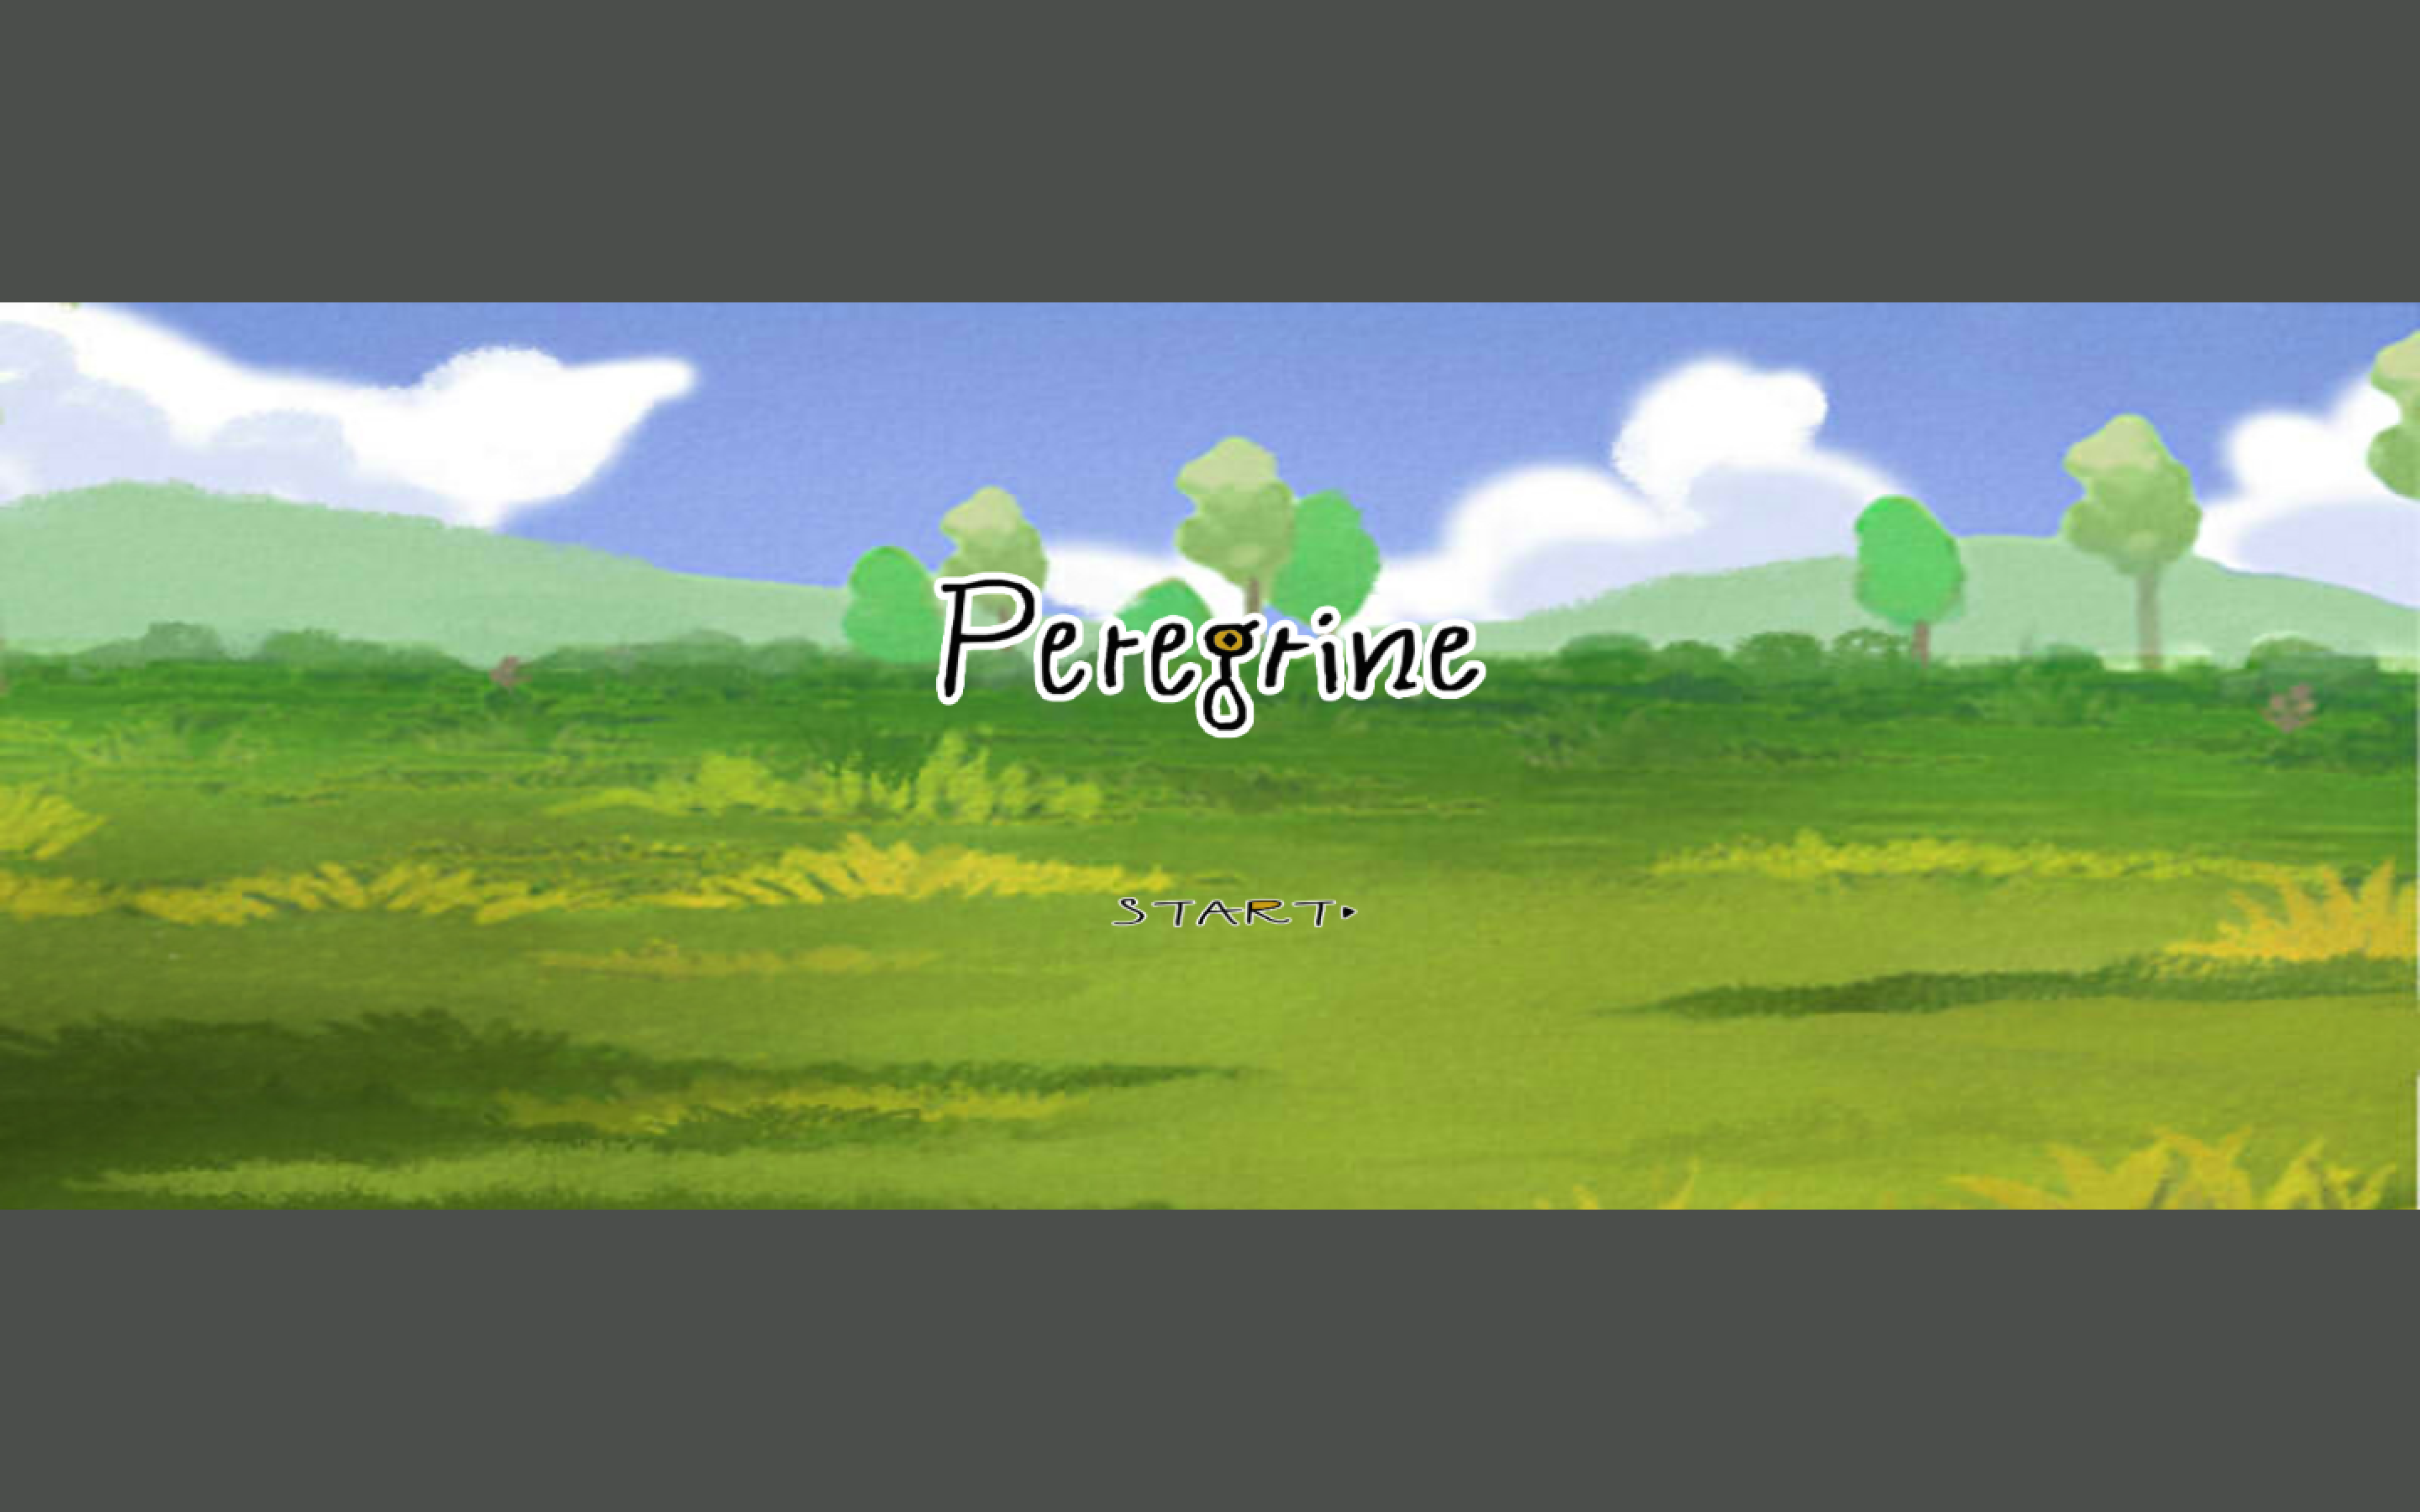 Peregrine title screen